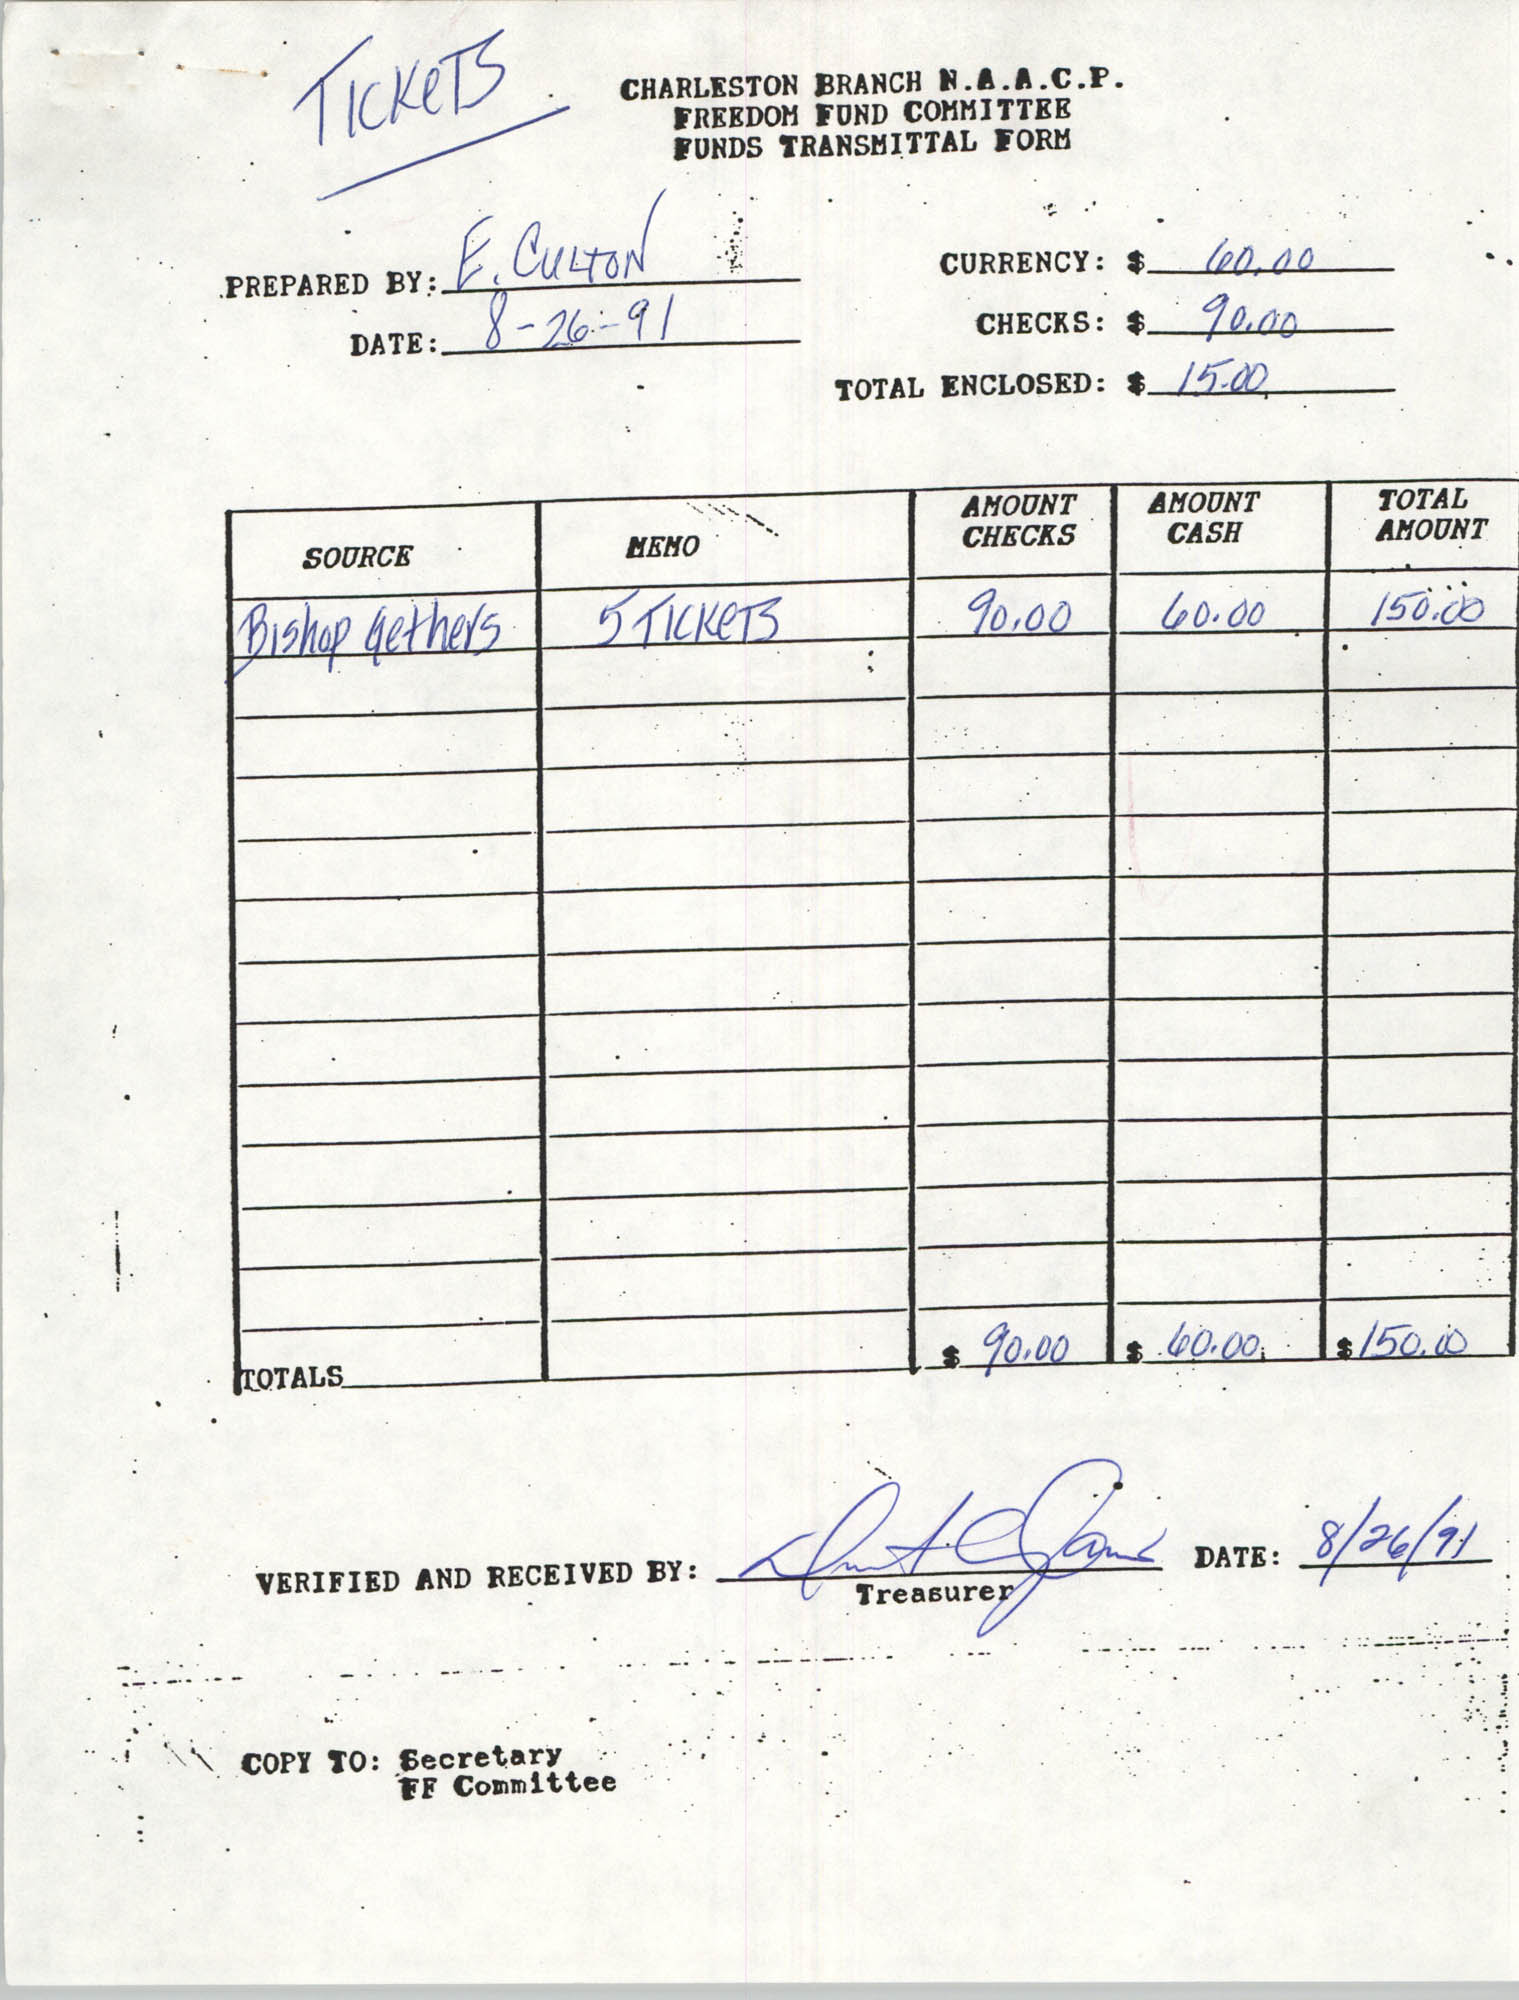 Charleston Branch of the NAACP Funds Transmittal Forms, August 1991, Page 30